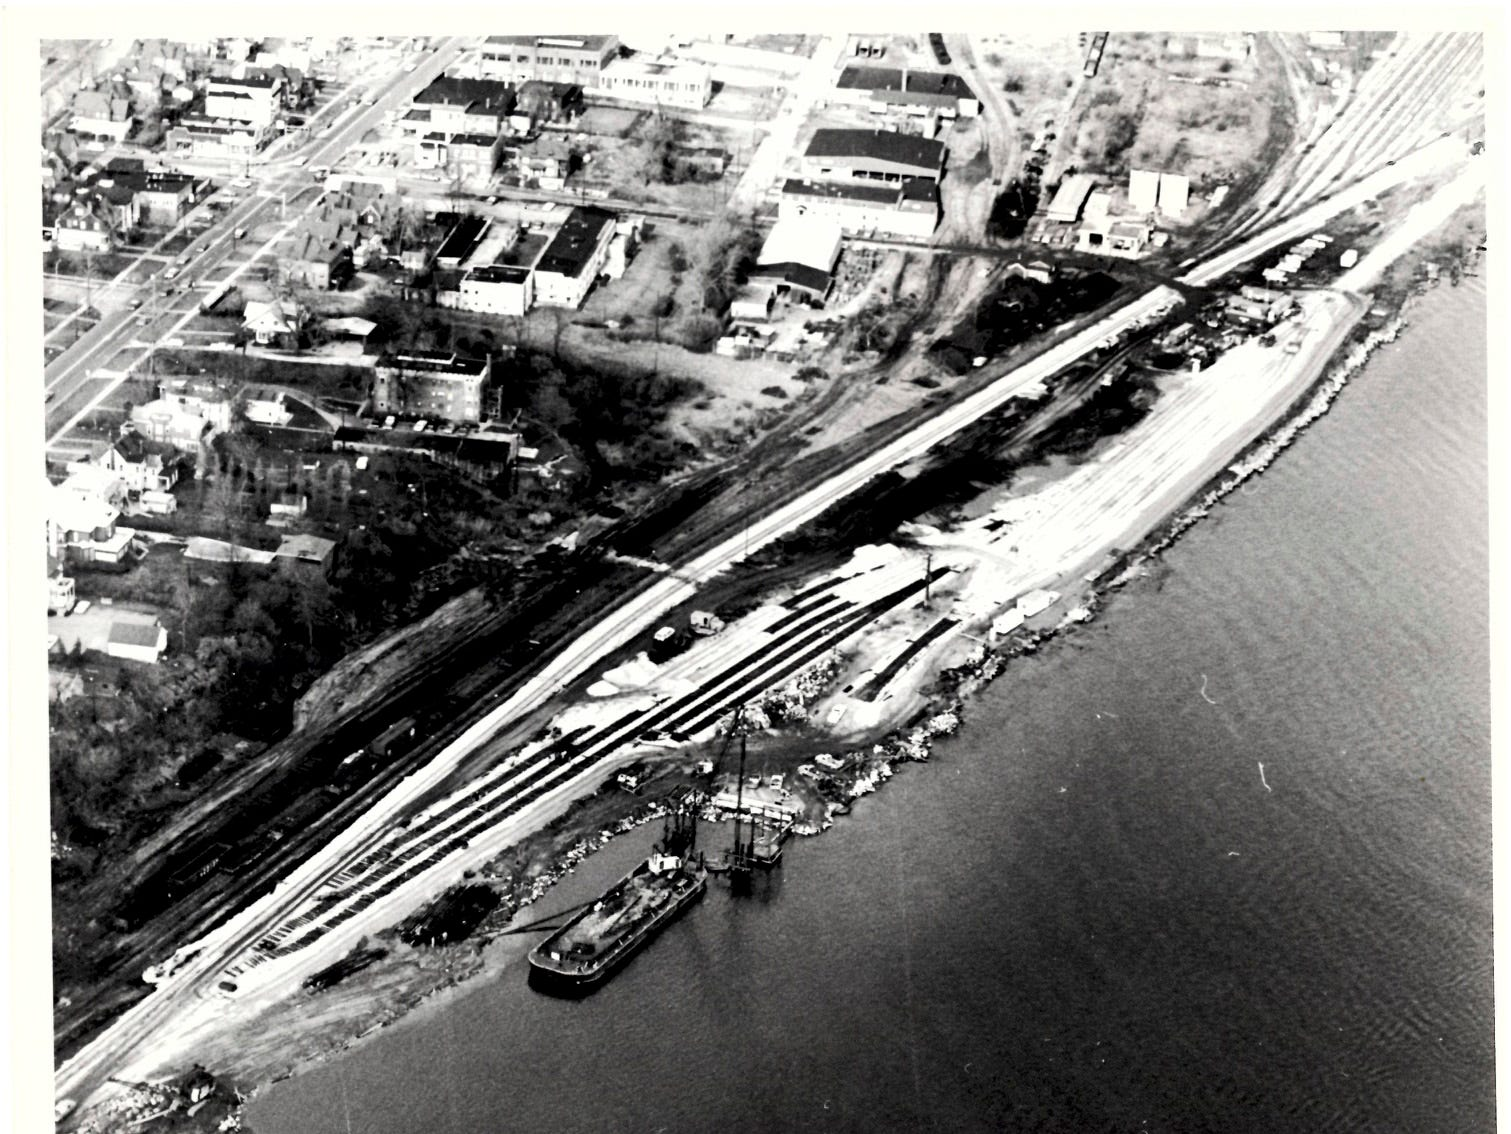 In a photo dated November 30, 1970, crews work to construct a dock for a new car ferry that will transport rail cars from the CSX and Grand Trunk Western railyards in Port Huron to Sarnia.